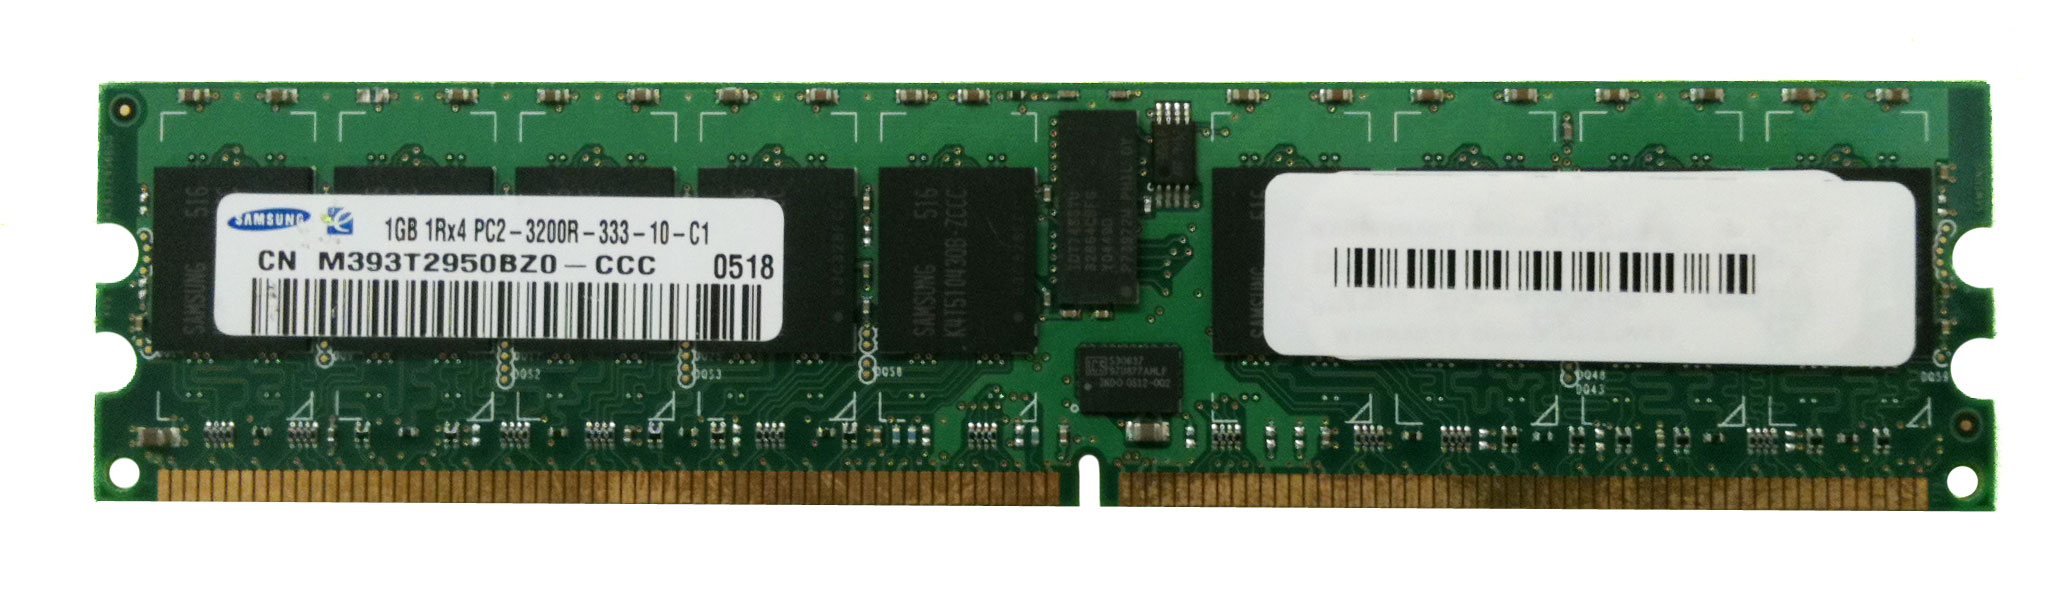 M4L-PC2400D2S4R3-1G M4L Certified 1GB 400MHz DDR2 PC2-3200 Reg ECC CL3 240-Pin Single Rank x4 DIMM